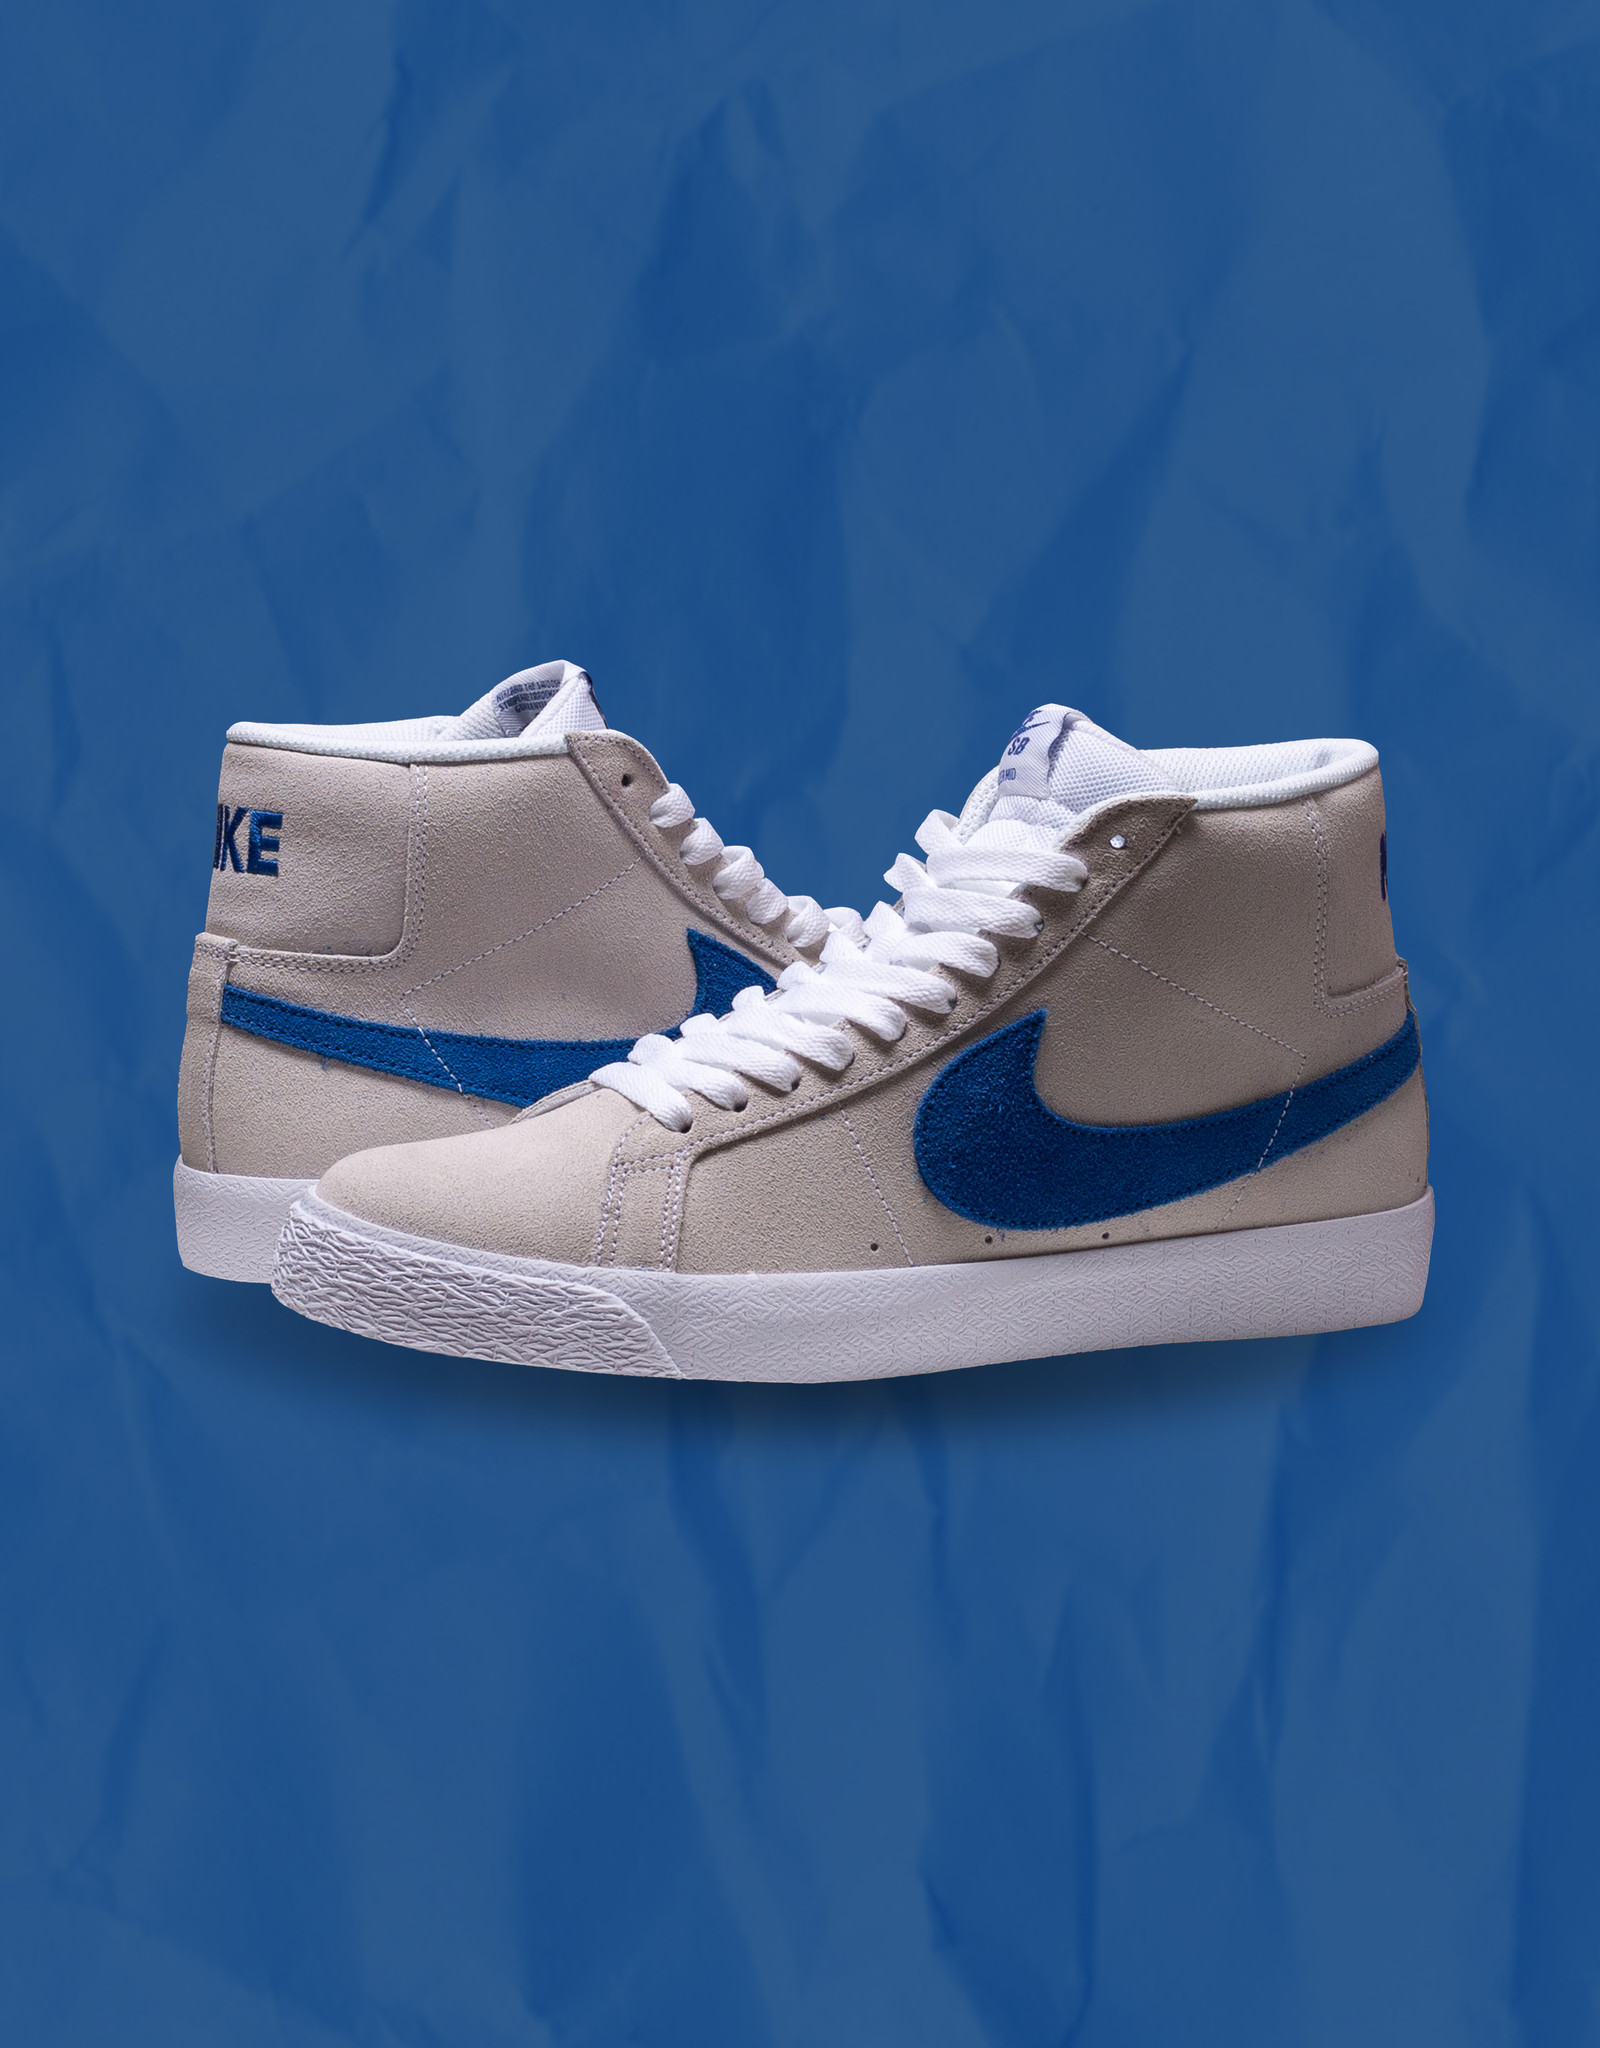 Nike SB Blazer Mid White/Royal